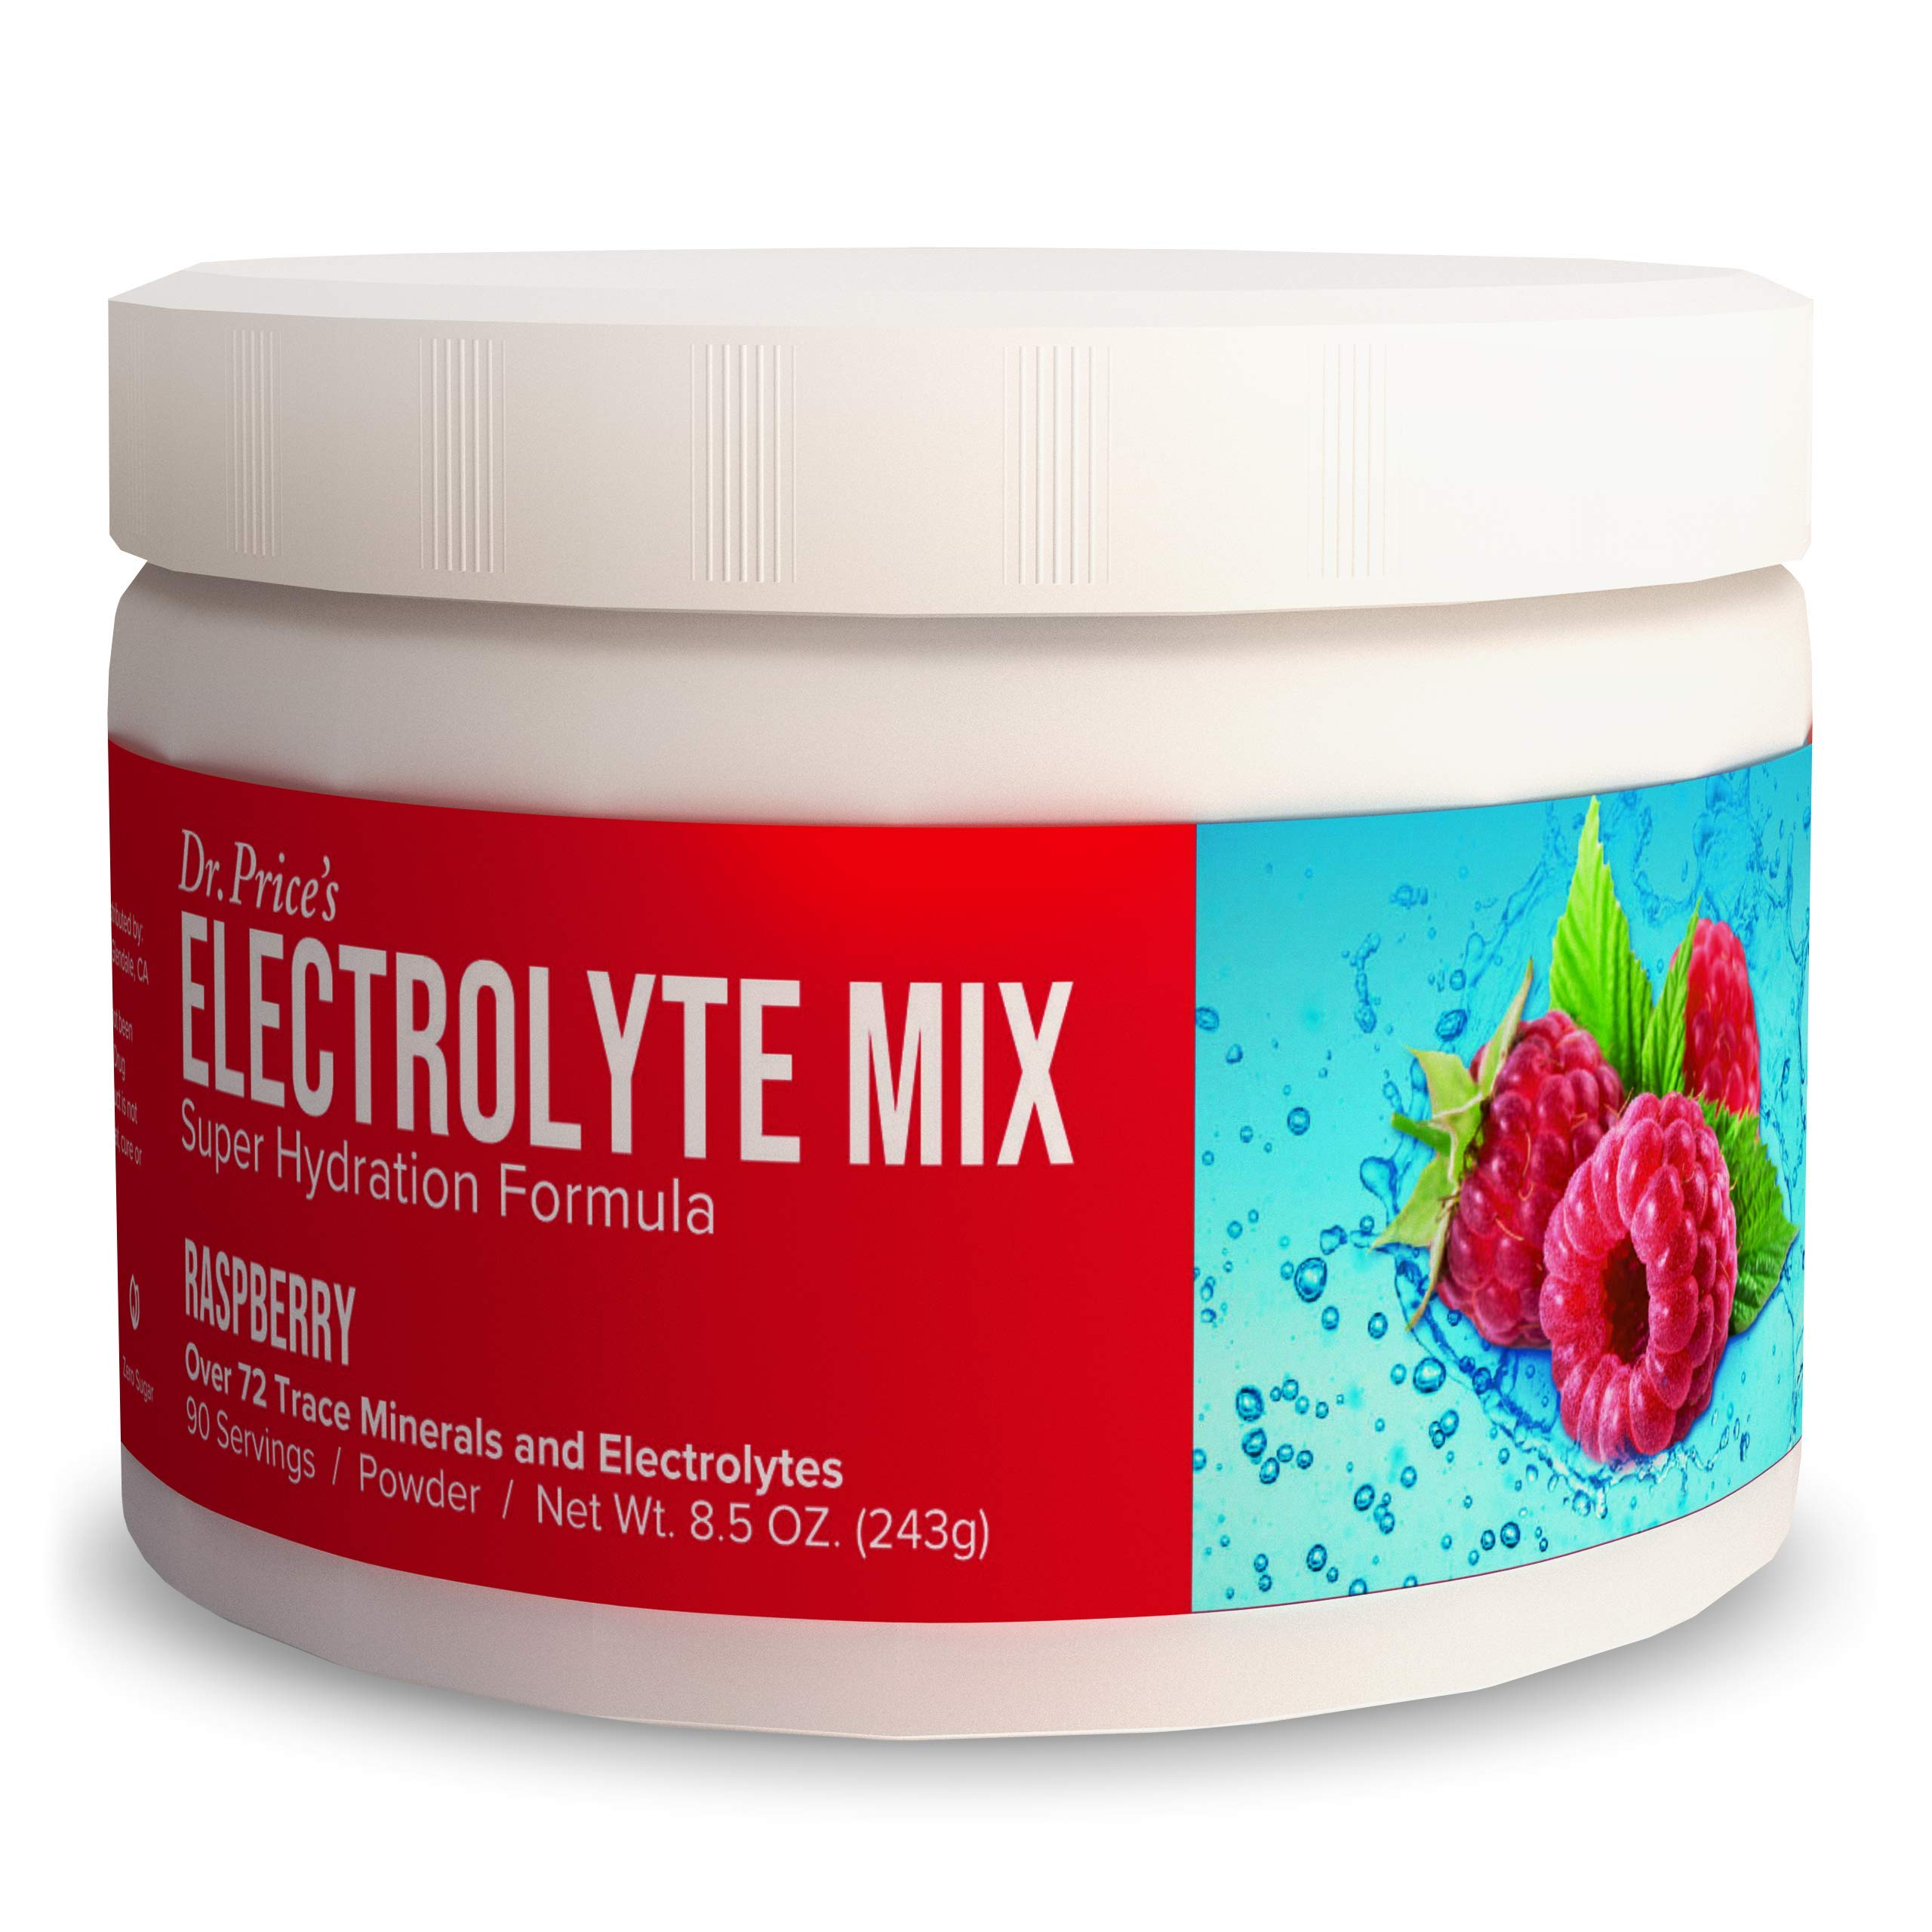 Electrolyte Mix Supplement Powder, 90 Servings, 72 Trace Minerals, Potassium, Sodium, Electrolyte Replacement Keto Drink | Raspberry Flavor | Dr. Price's Vitamins, No Sugar, Vegan, Non-GMO by Dr. Price's Vitamins